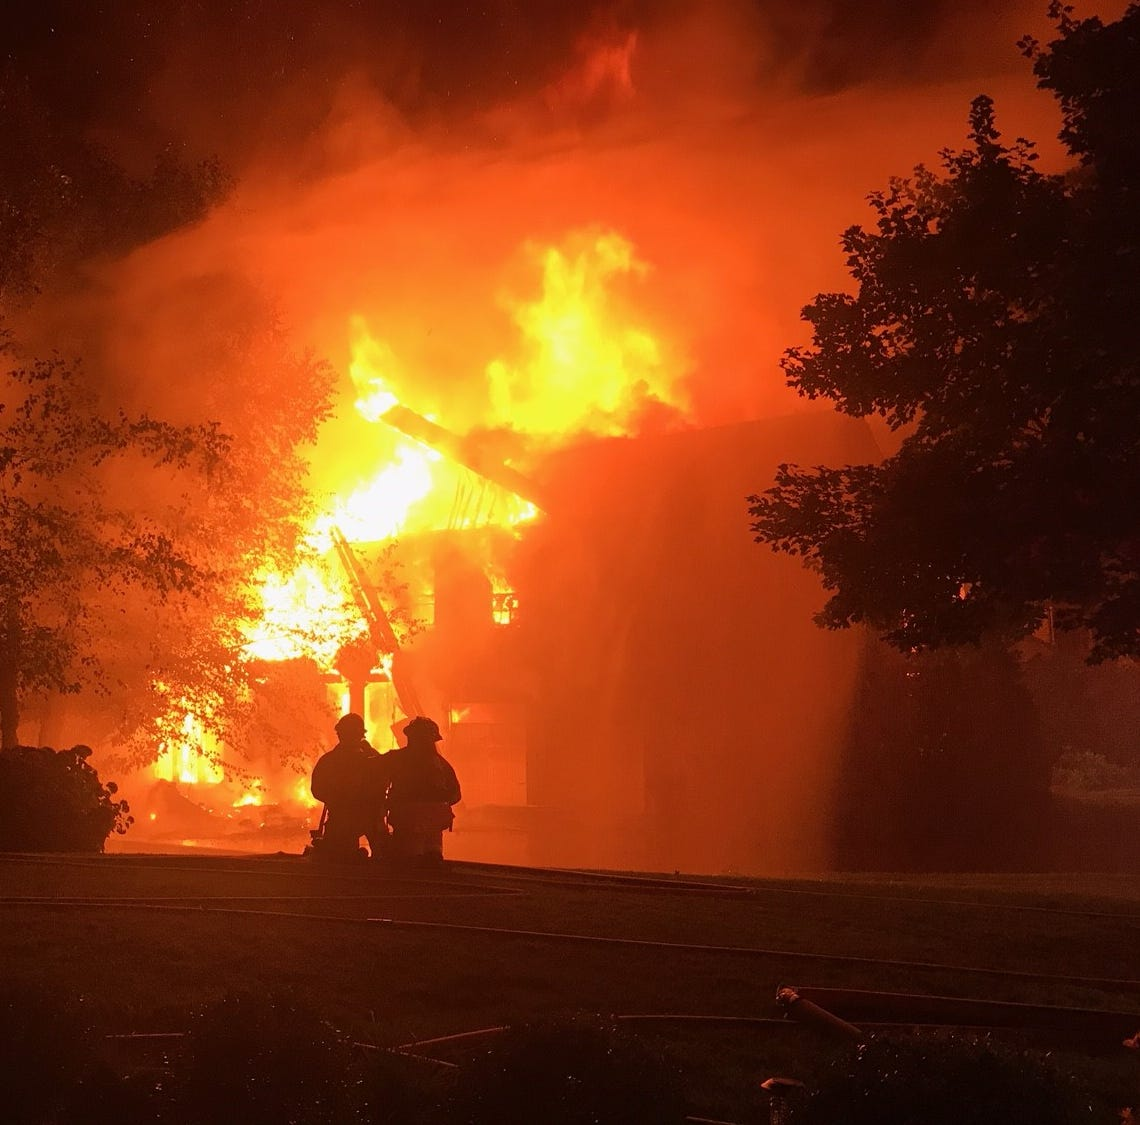 Brentwood home declared 'total loss' after fire, crews still battling spot fires